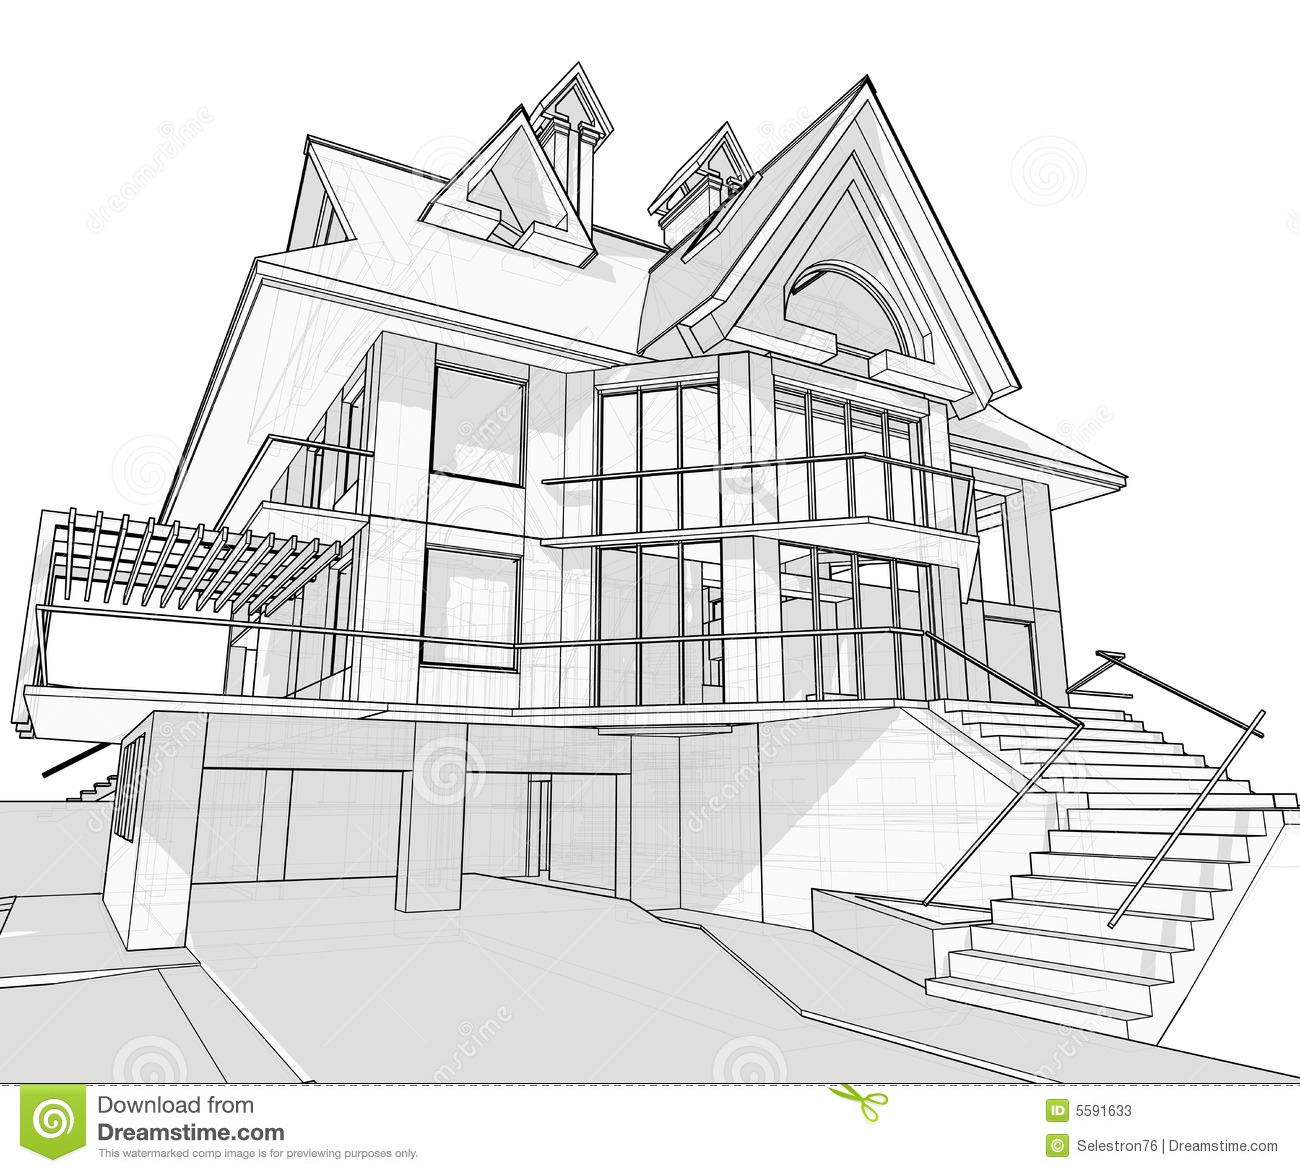 House architecture blueprint stock vector illustration for House building blueprints